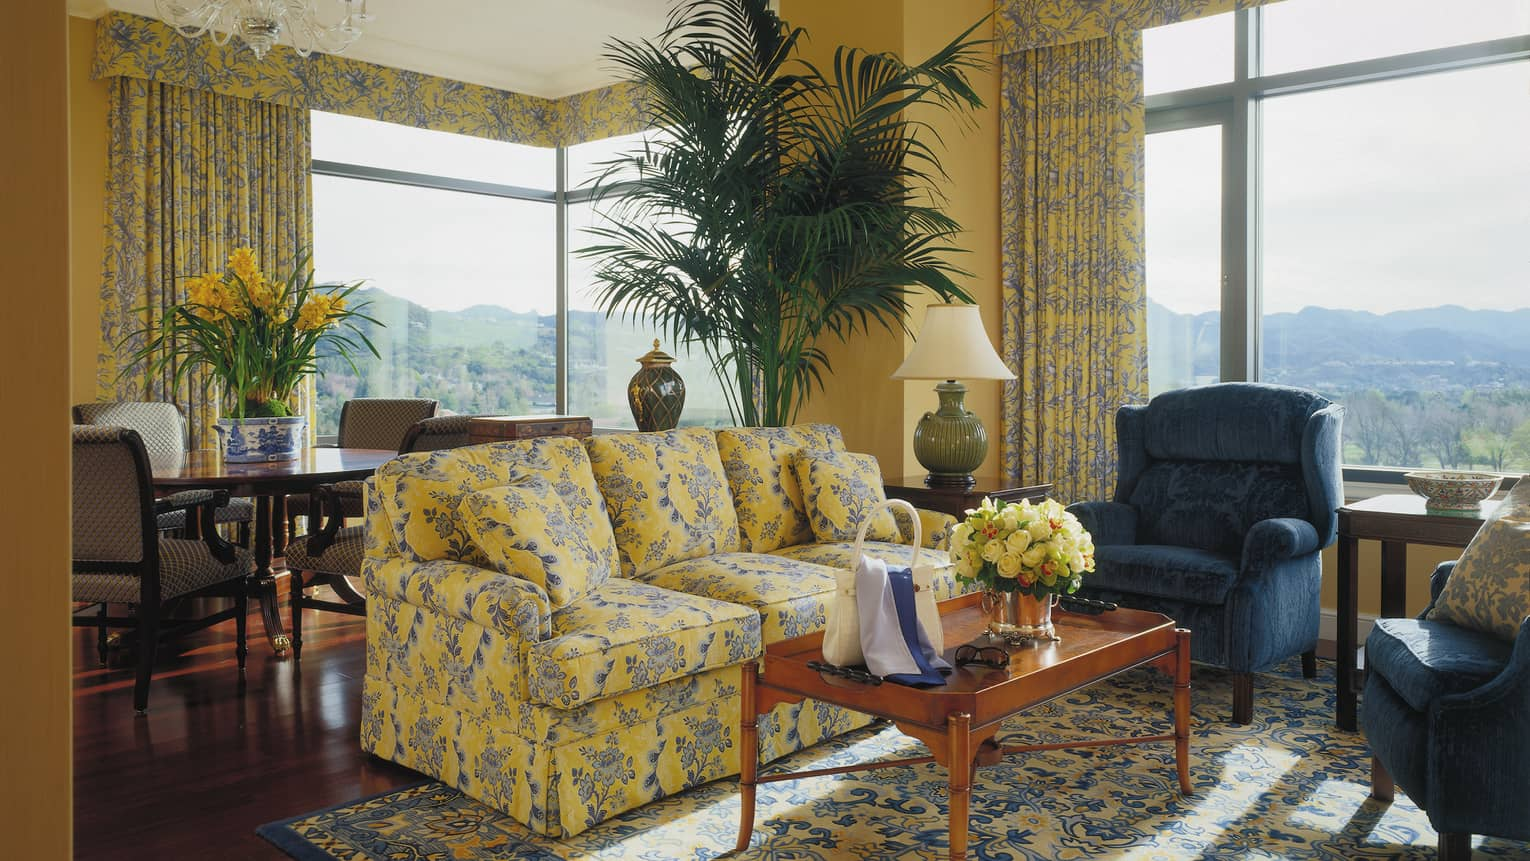 One-bedroom suite blue and yellow floral sofa, armchair, coffee table with purse, sunglasses